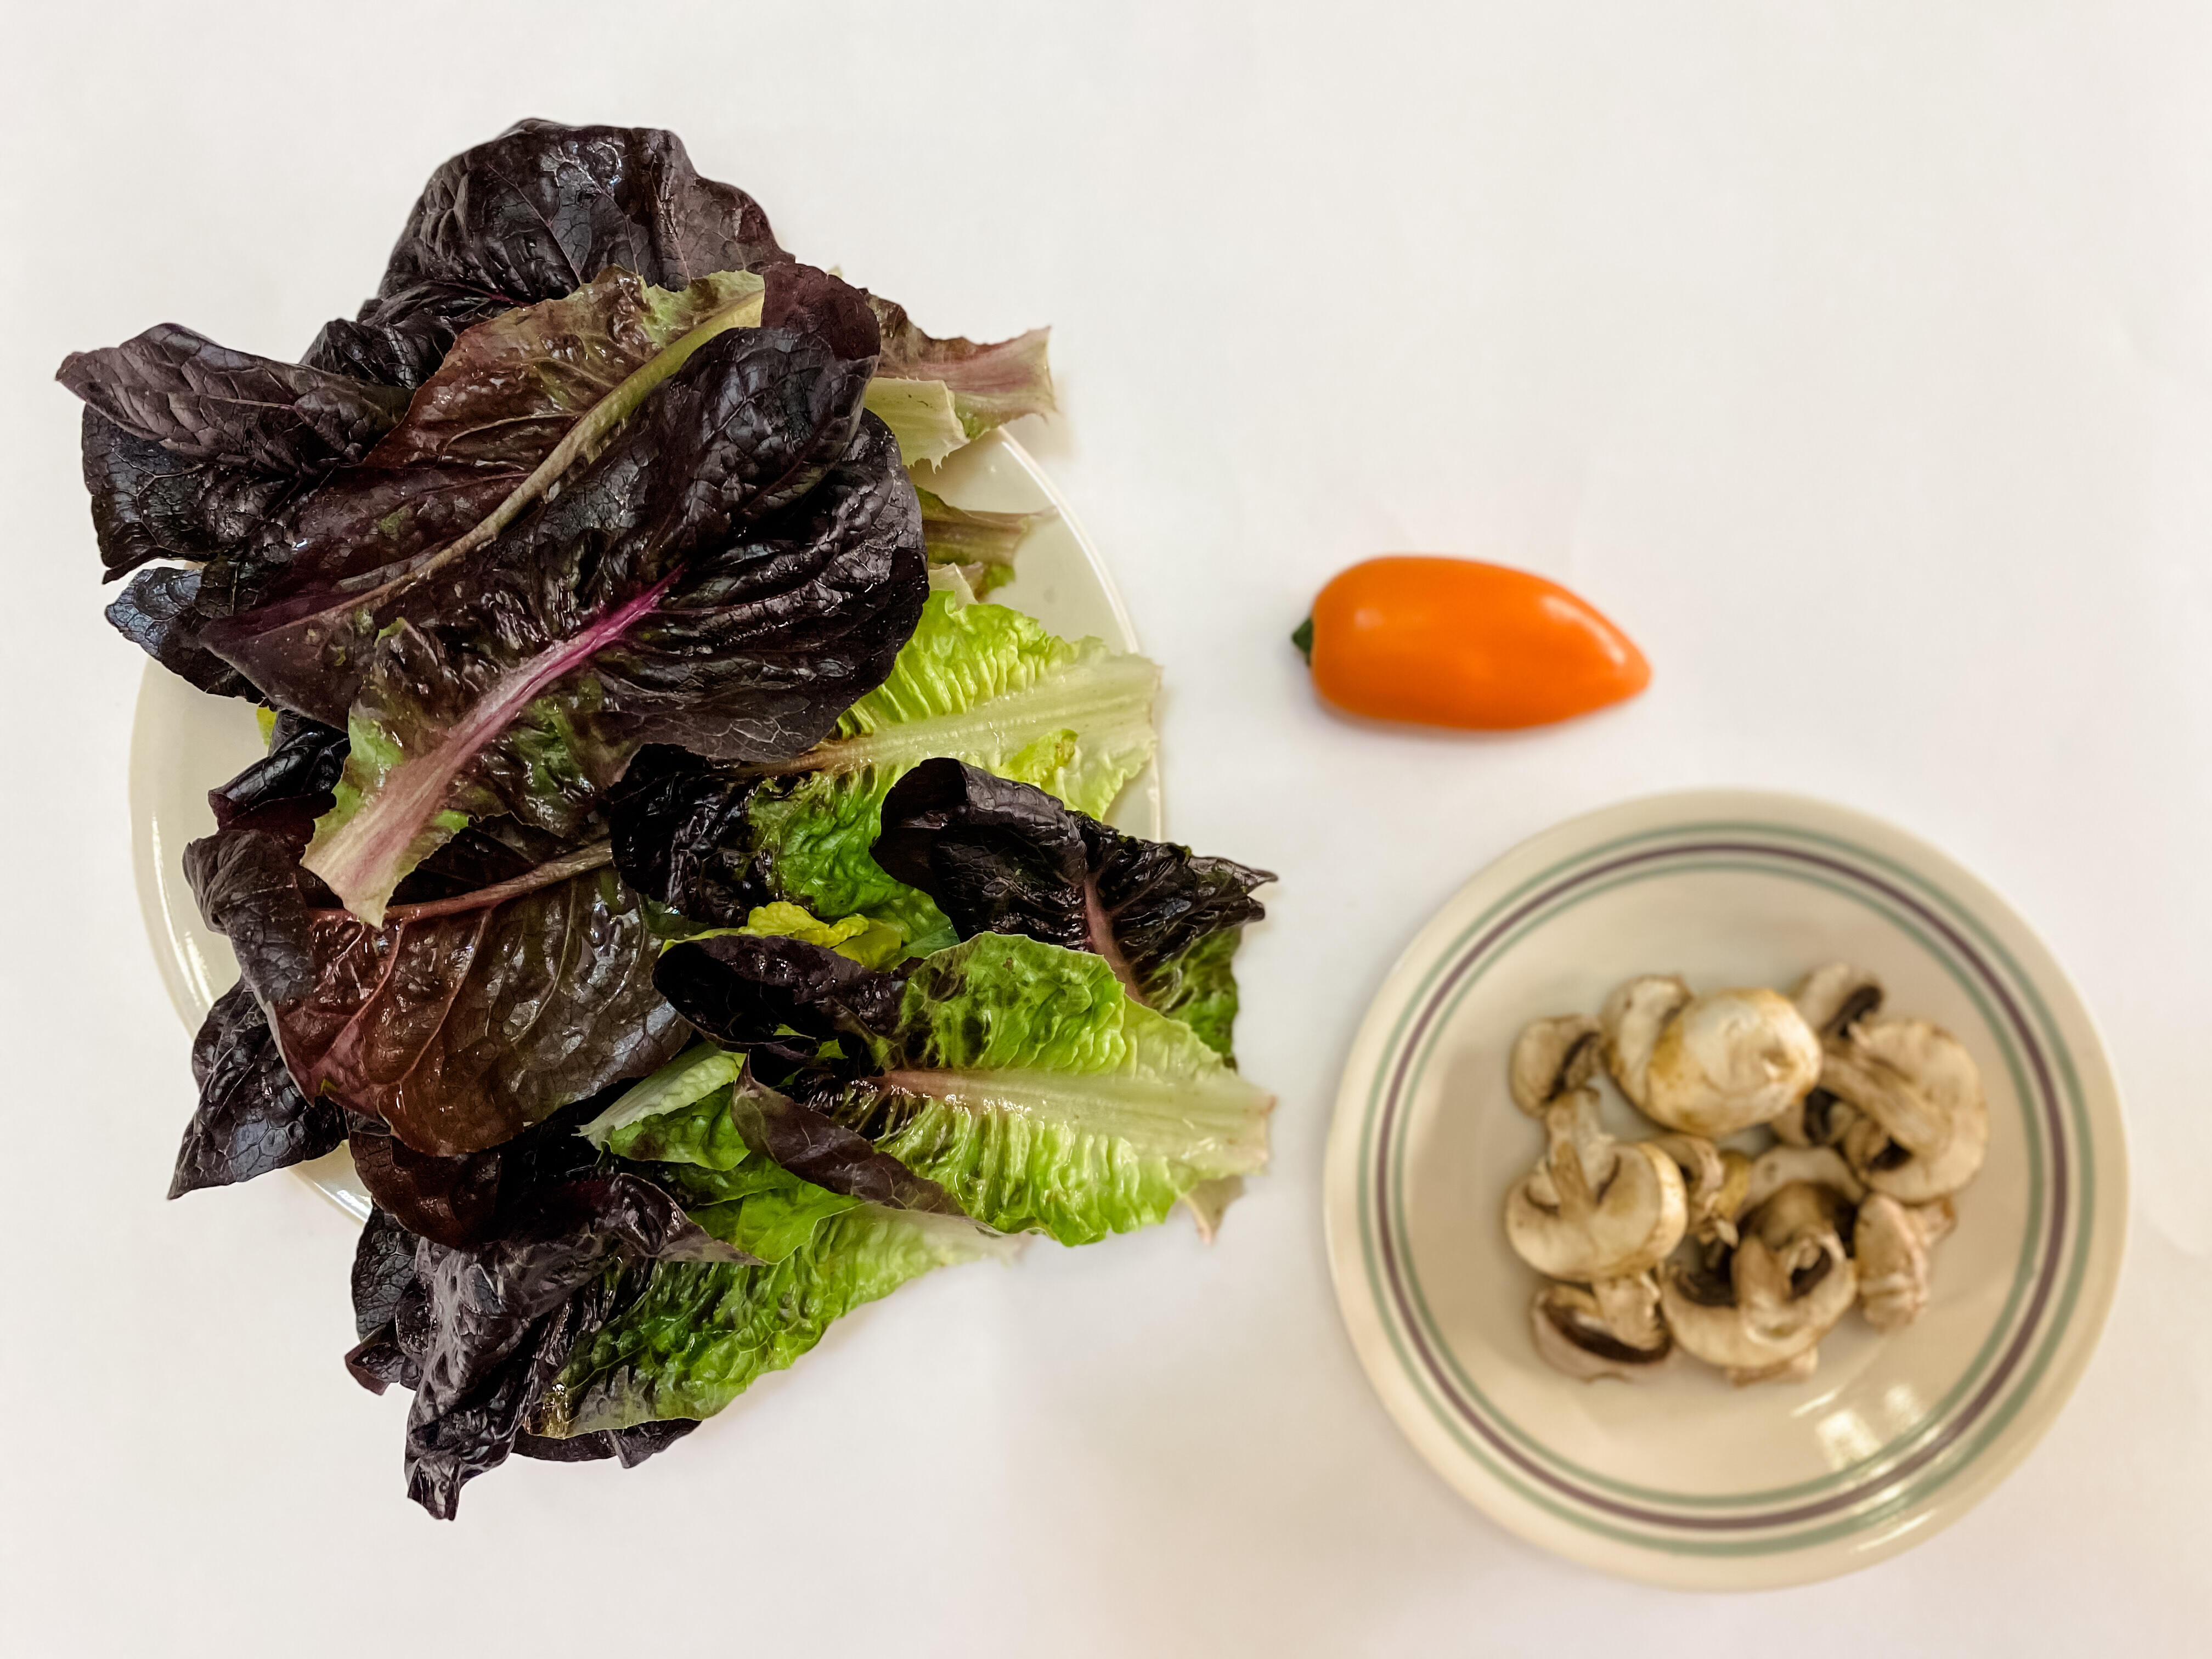 5 servings of vegetables: 4 cups of lettuce, half a cup of mushrooms and a bell pepper for a good dose.